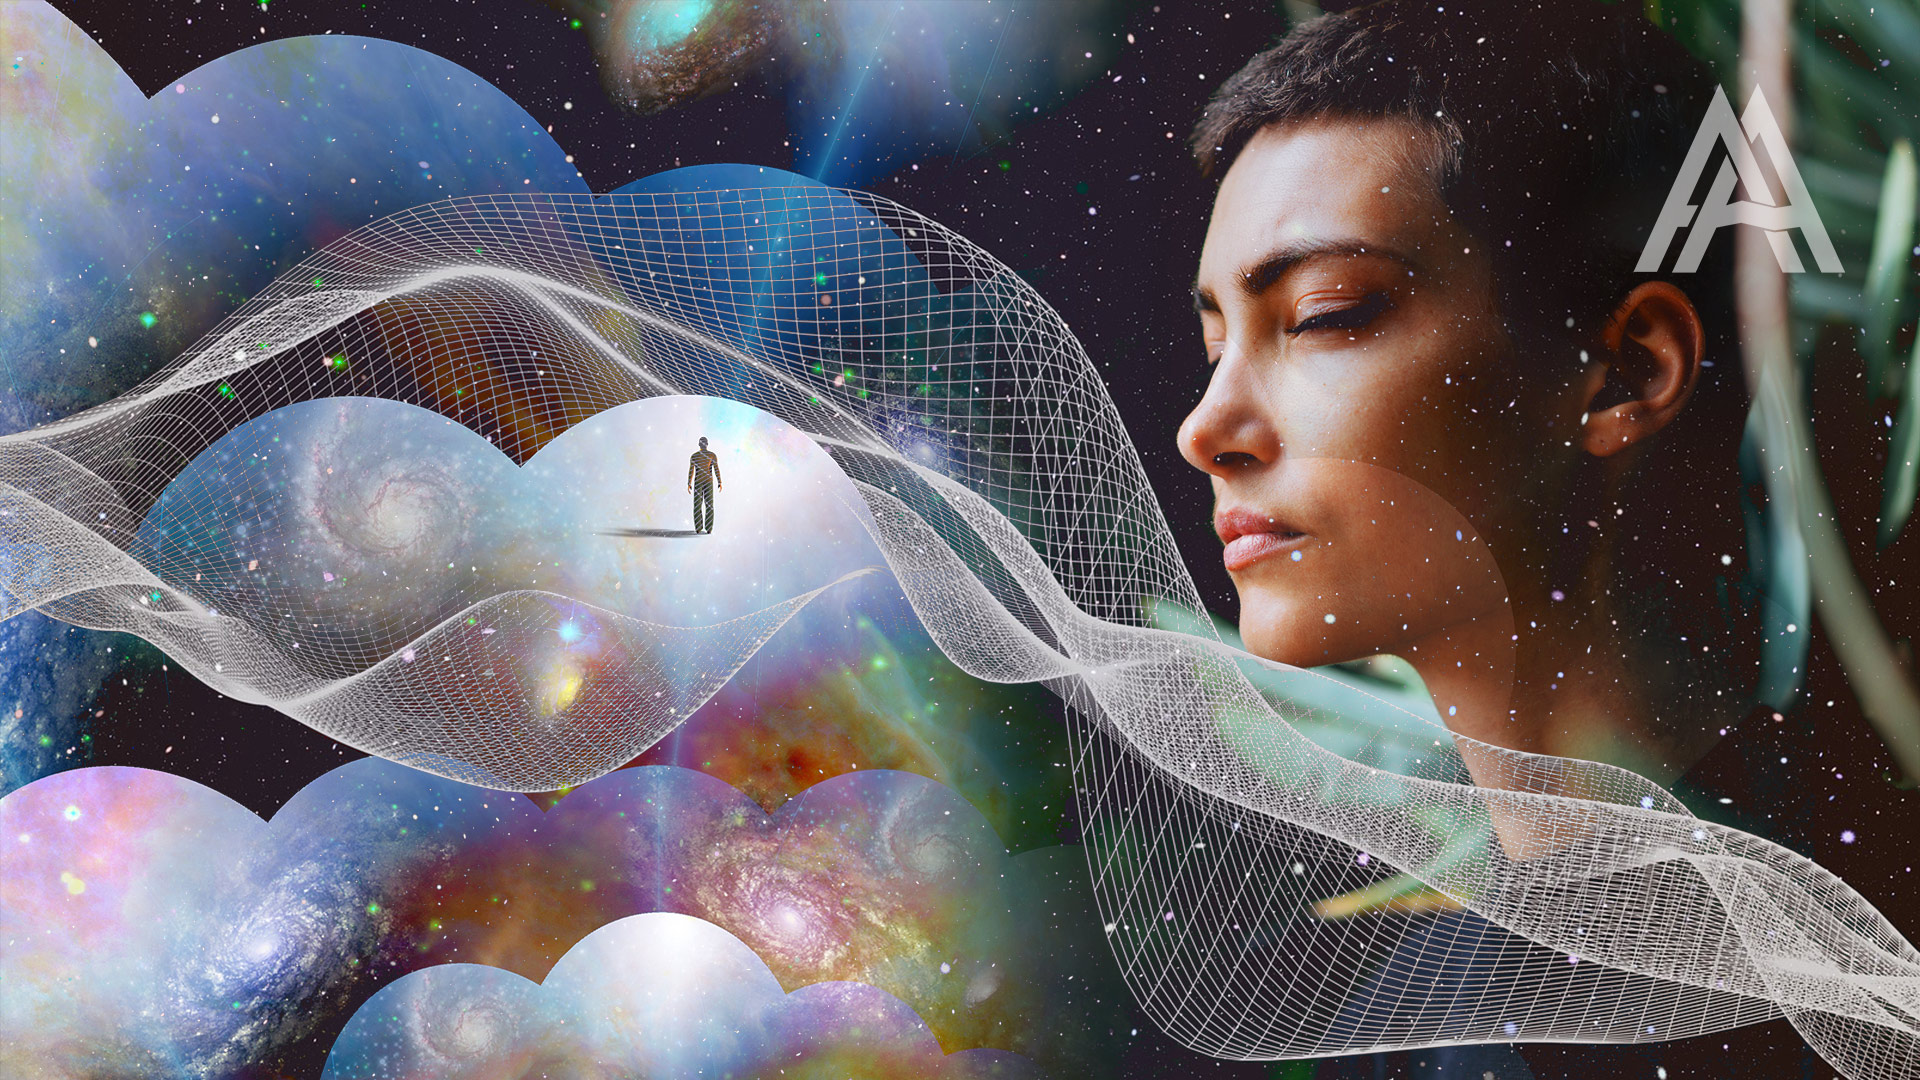 visualize yourself as a universal being